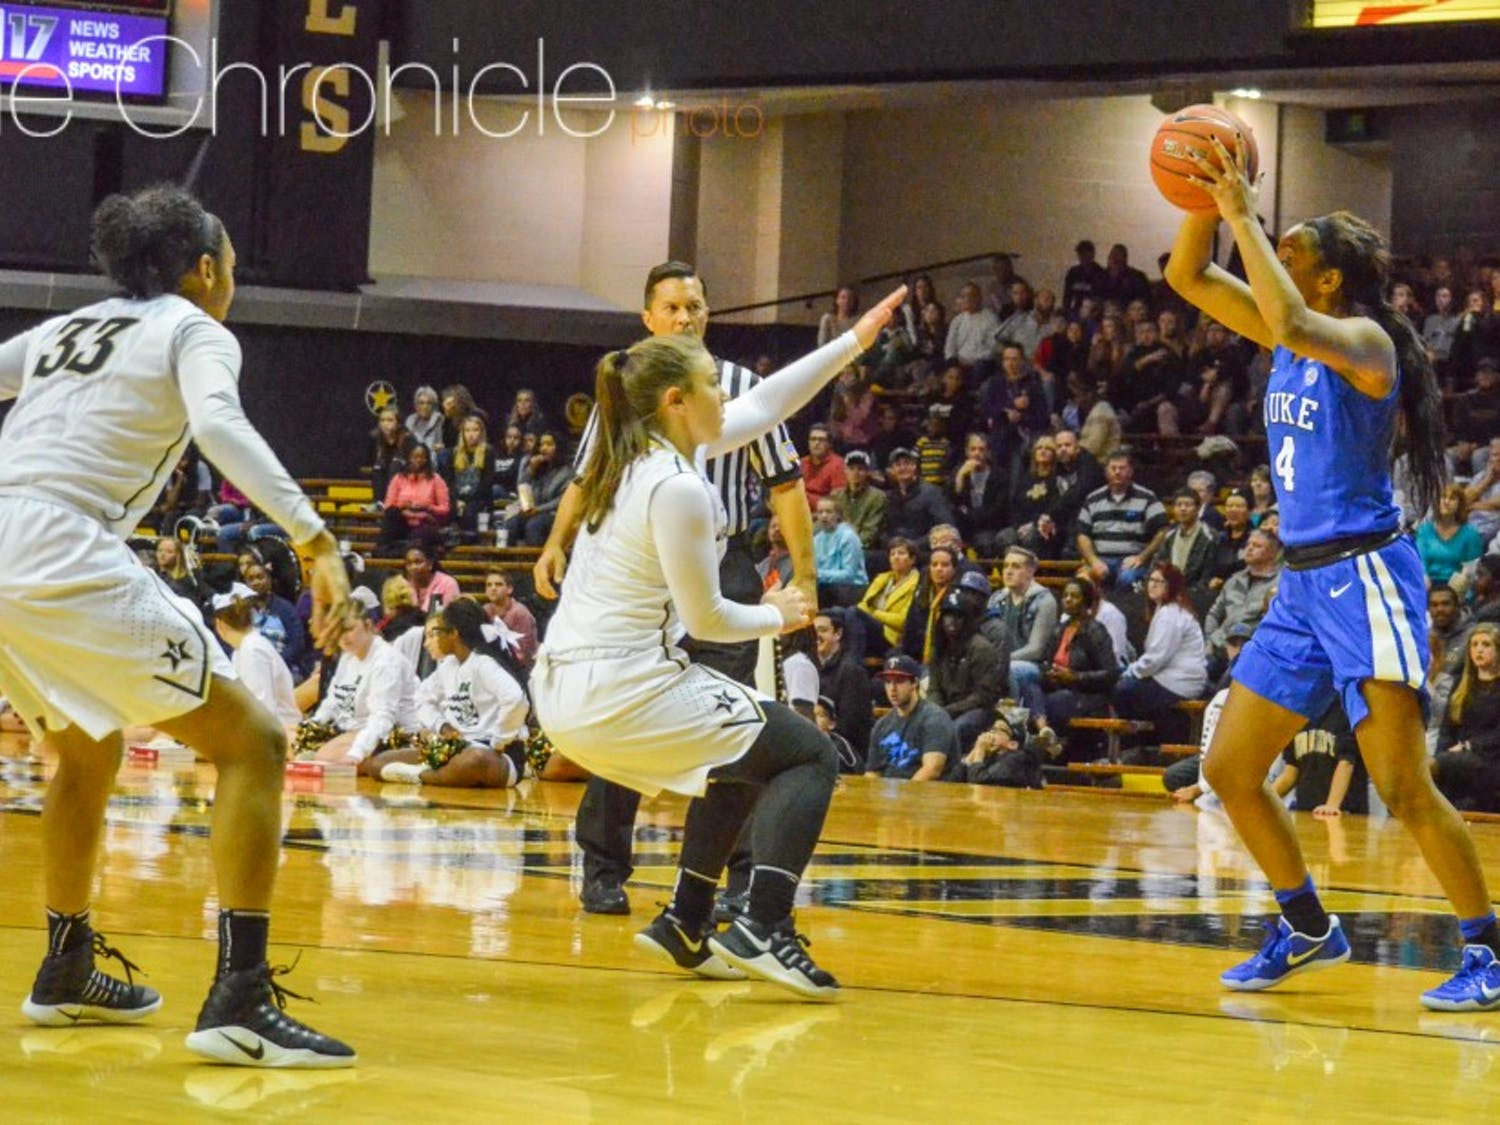 Lexie Brown topped 20 points twice last week, but did not make a 3-pointer and committed four turnovers in Sunday's loss to Vanderbilt.